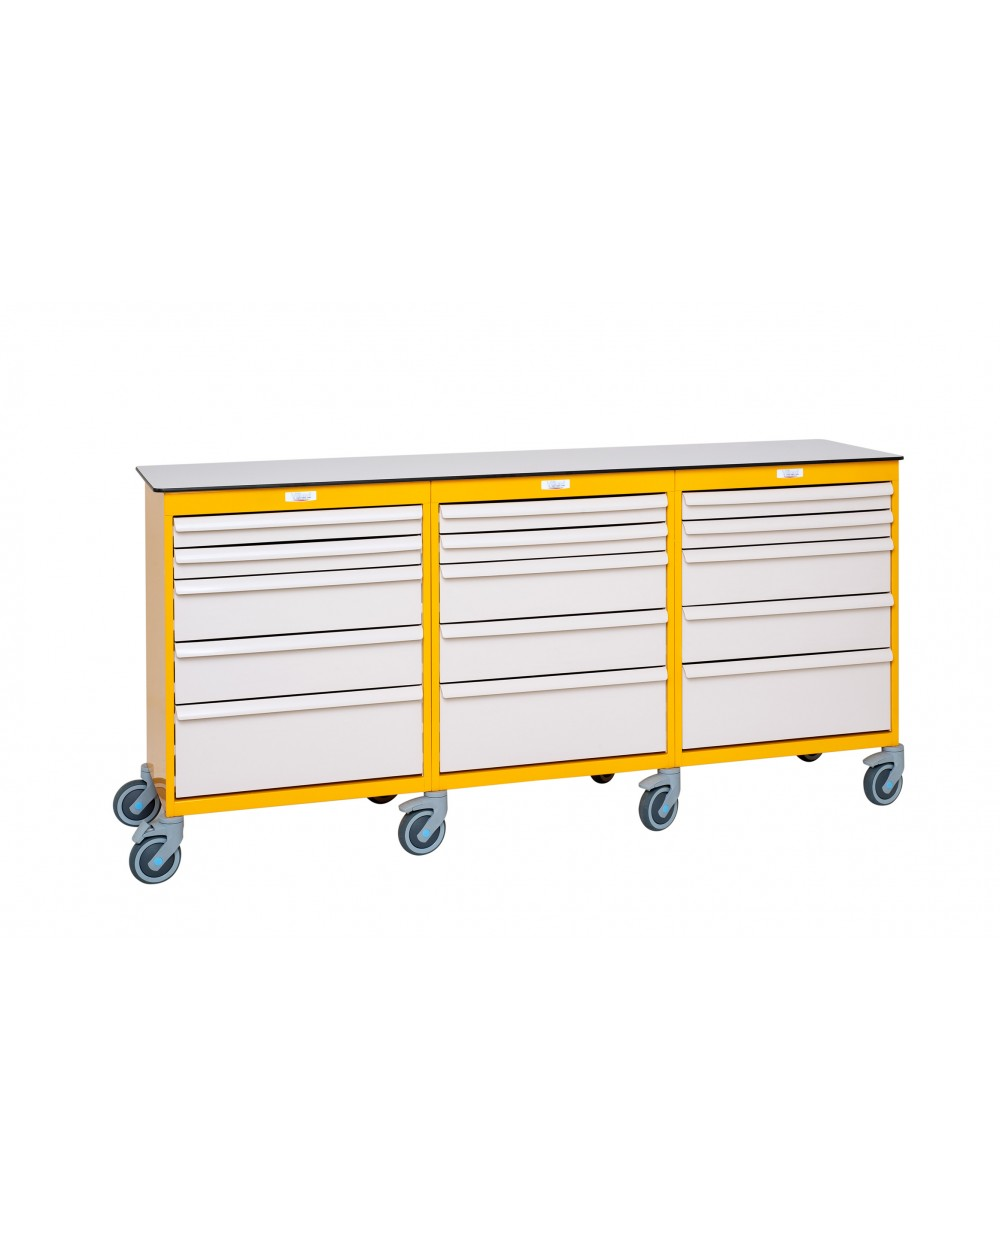 Plan De Travail Mobile mobile worstation with drawers 3 columns 9